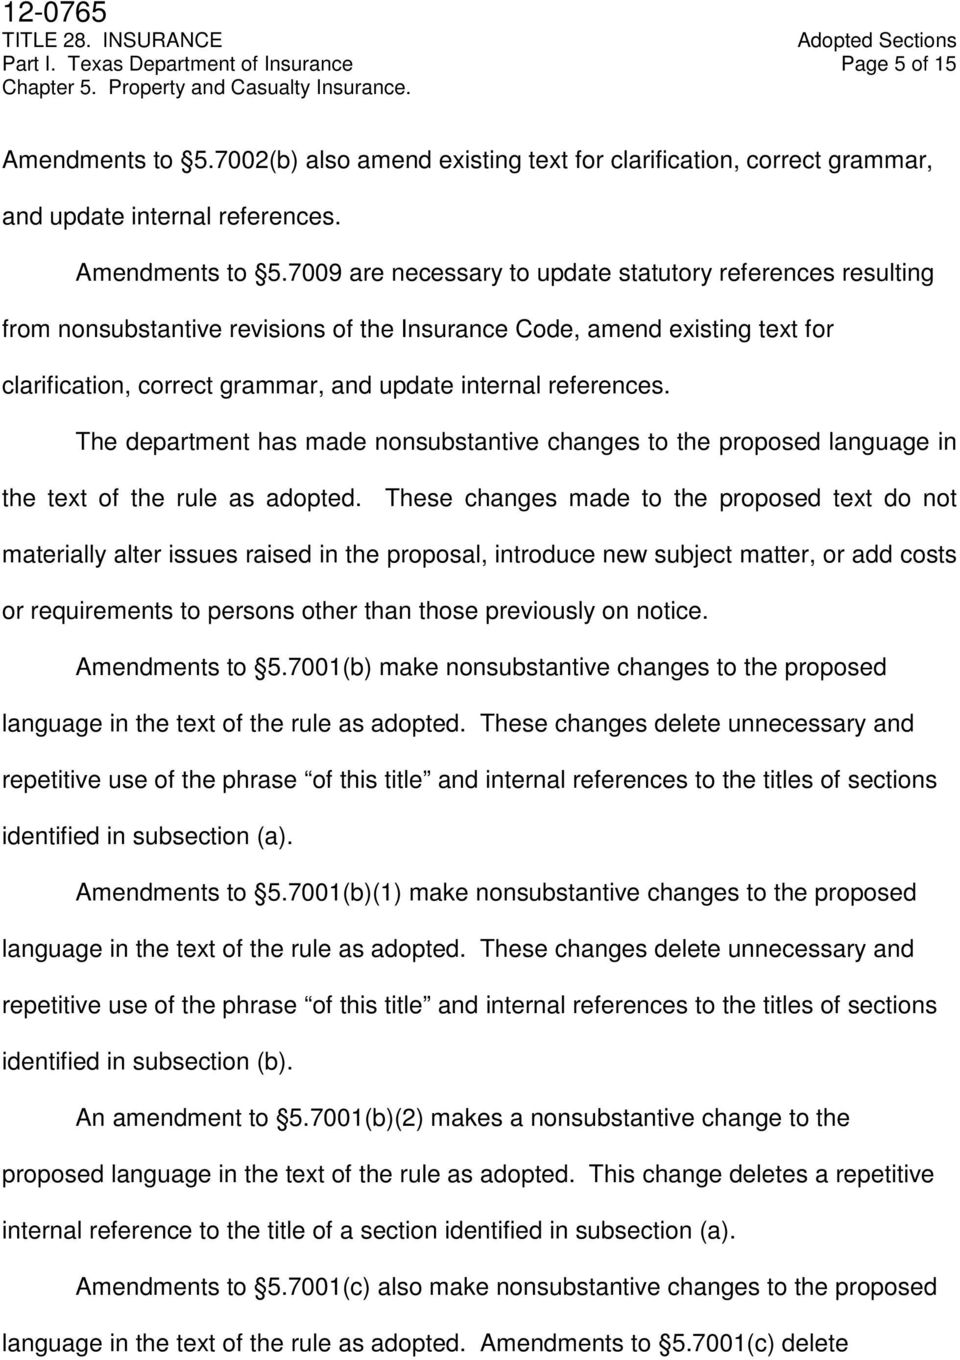 7009 are necessary to update statutory references resulting from nonsubstantive revisions of the Insurance Code, amend existing text for clarification, correct grammar, and update internal references.